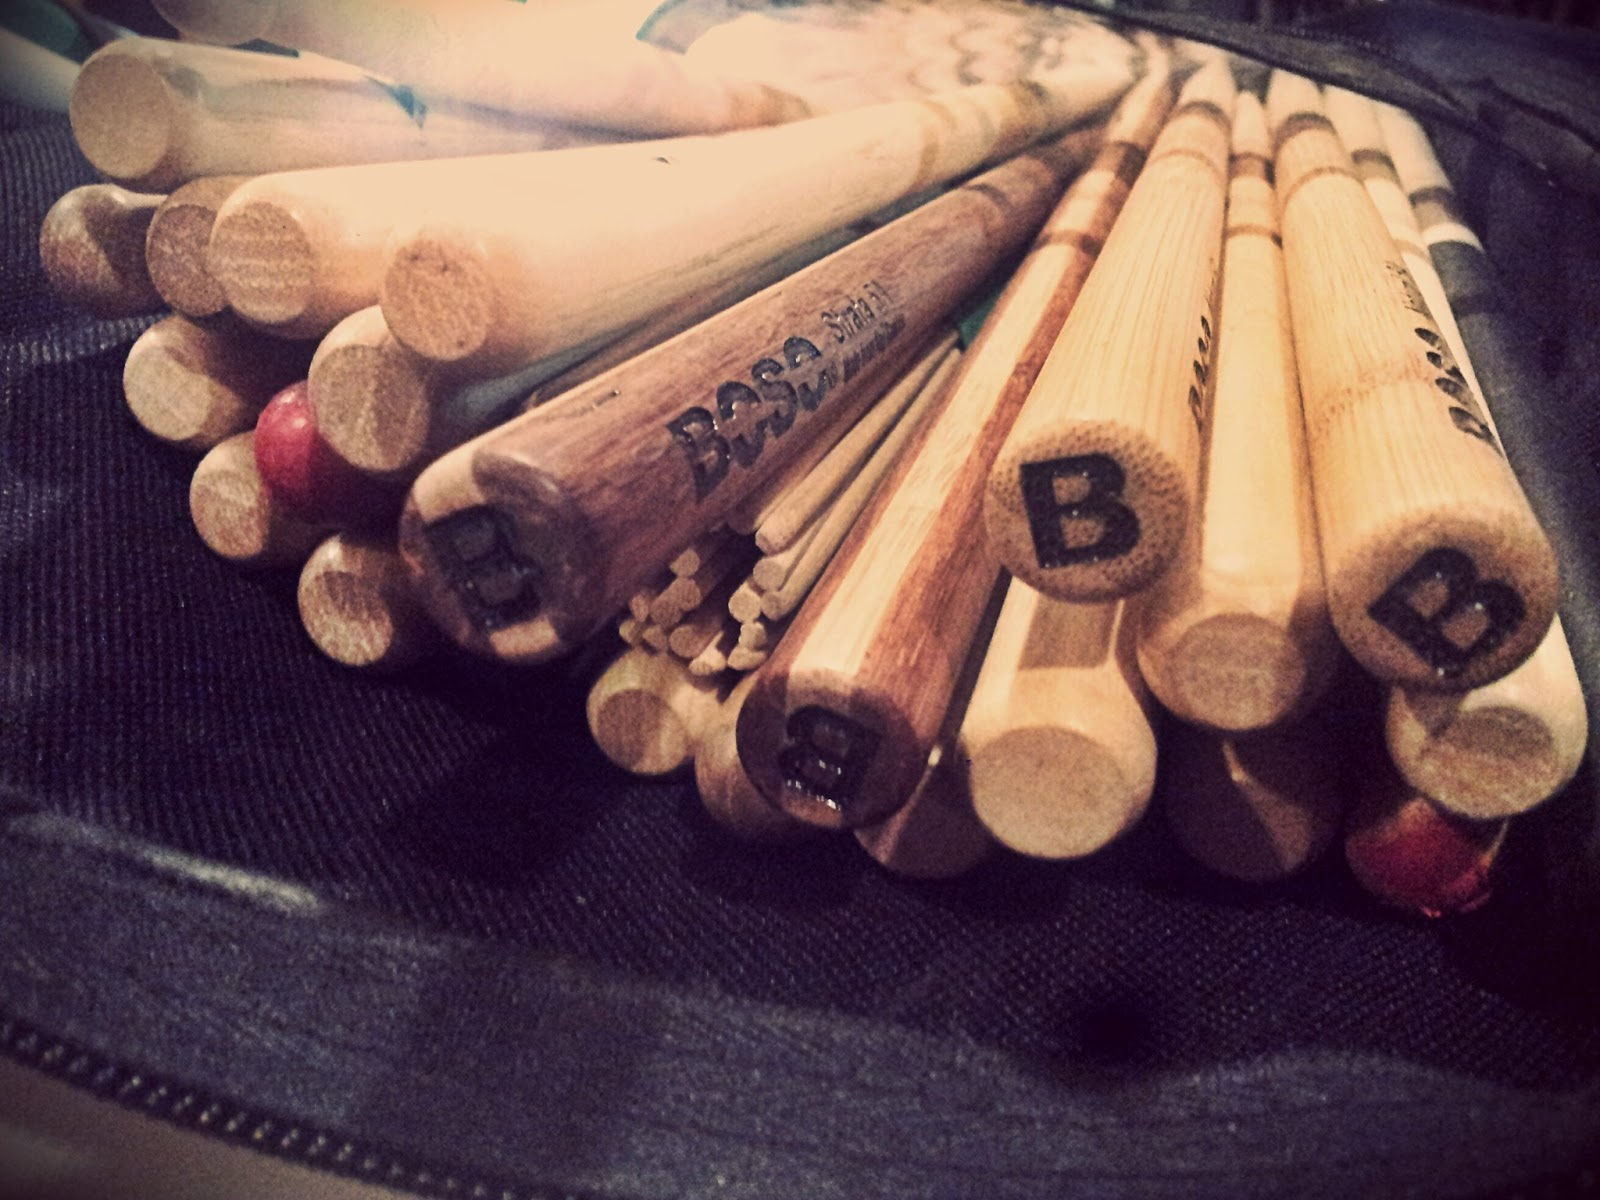 Chris pocket boy georgenes boso bamboo drumsticks for Things you can make with bamboo